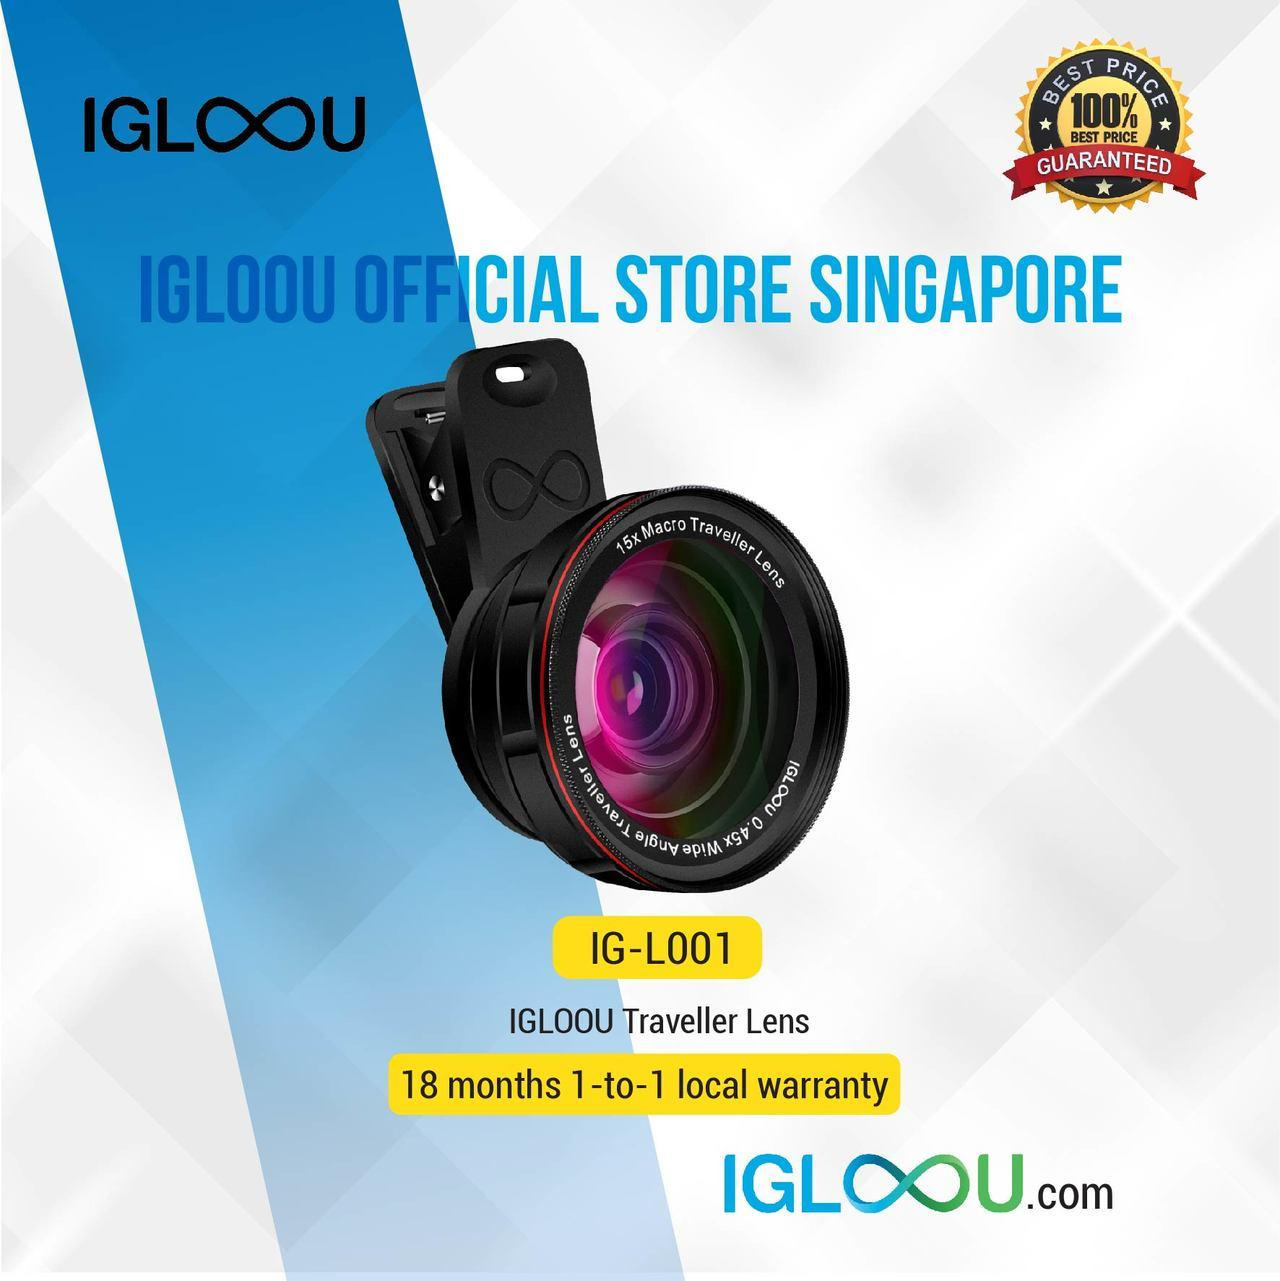 Igloou 2-In-1 Traveller Lens, 0.45x Wide Angle And 15x Macro Traveller Lens For Iphone X, Huawei P20 Pro, And All Type Of Mobile Devices By Igloou Store.